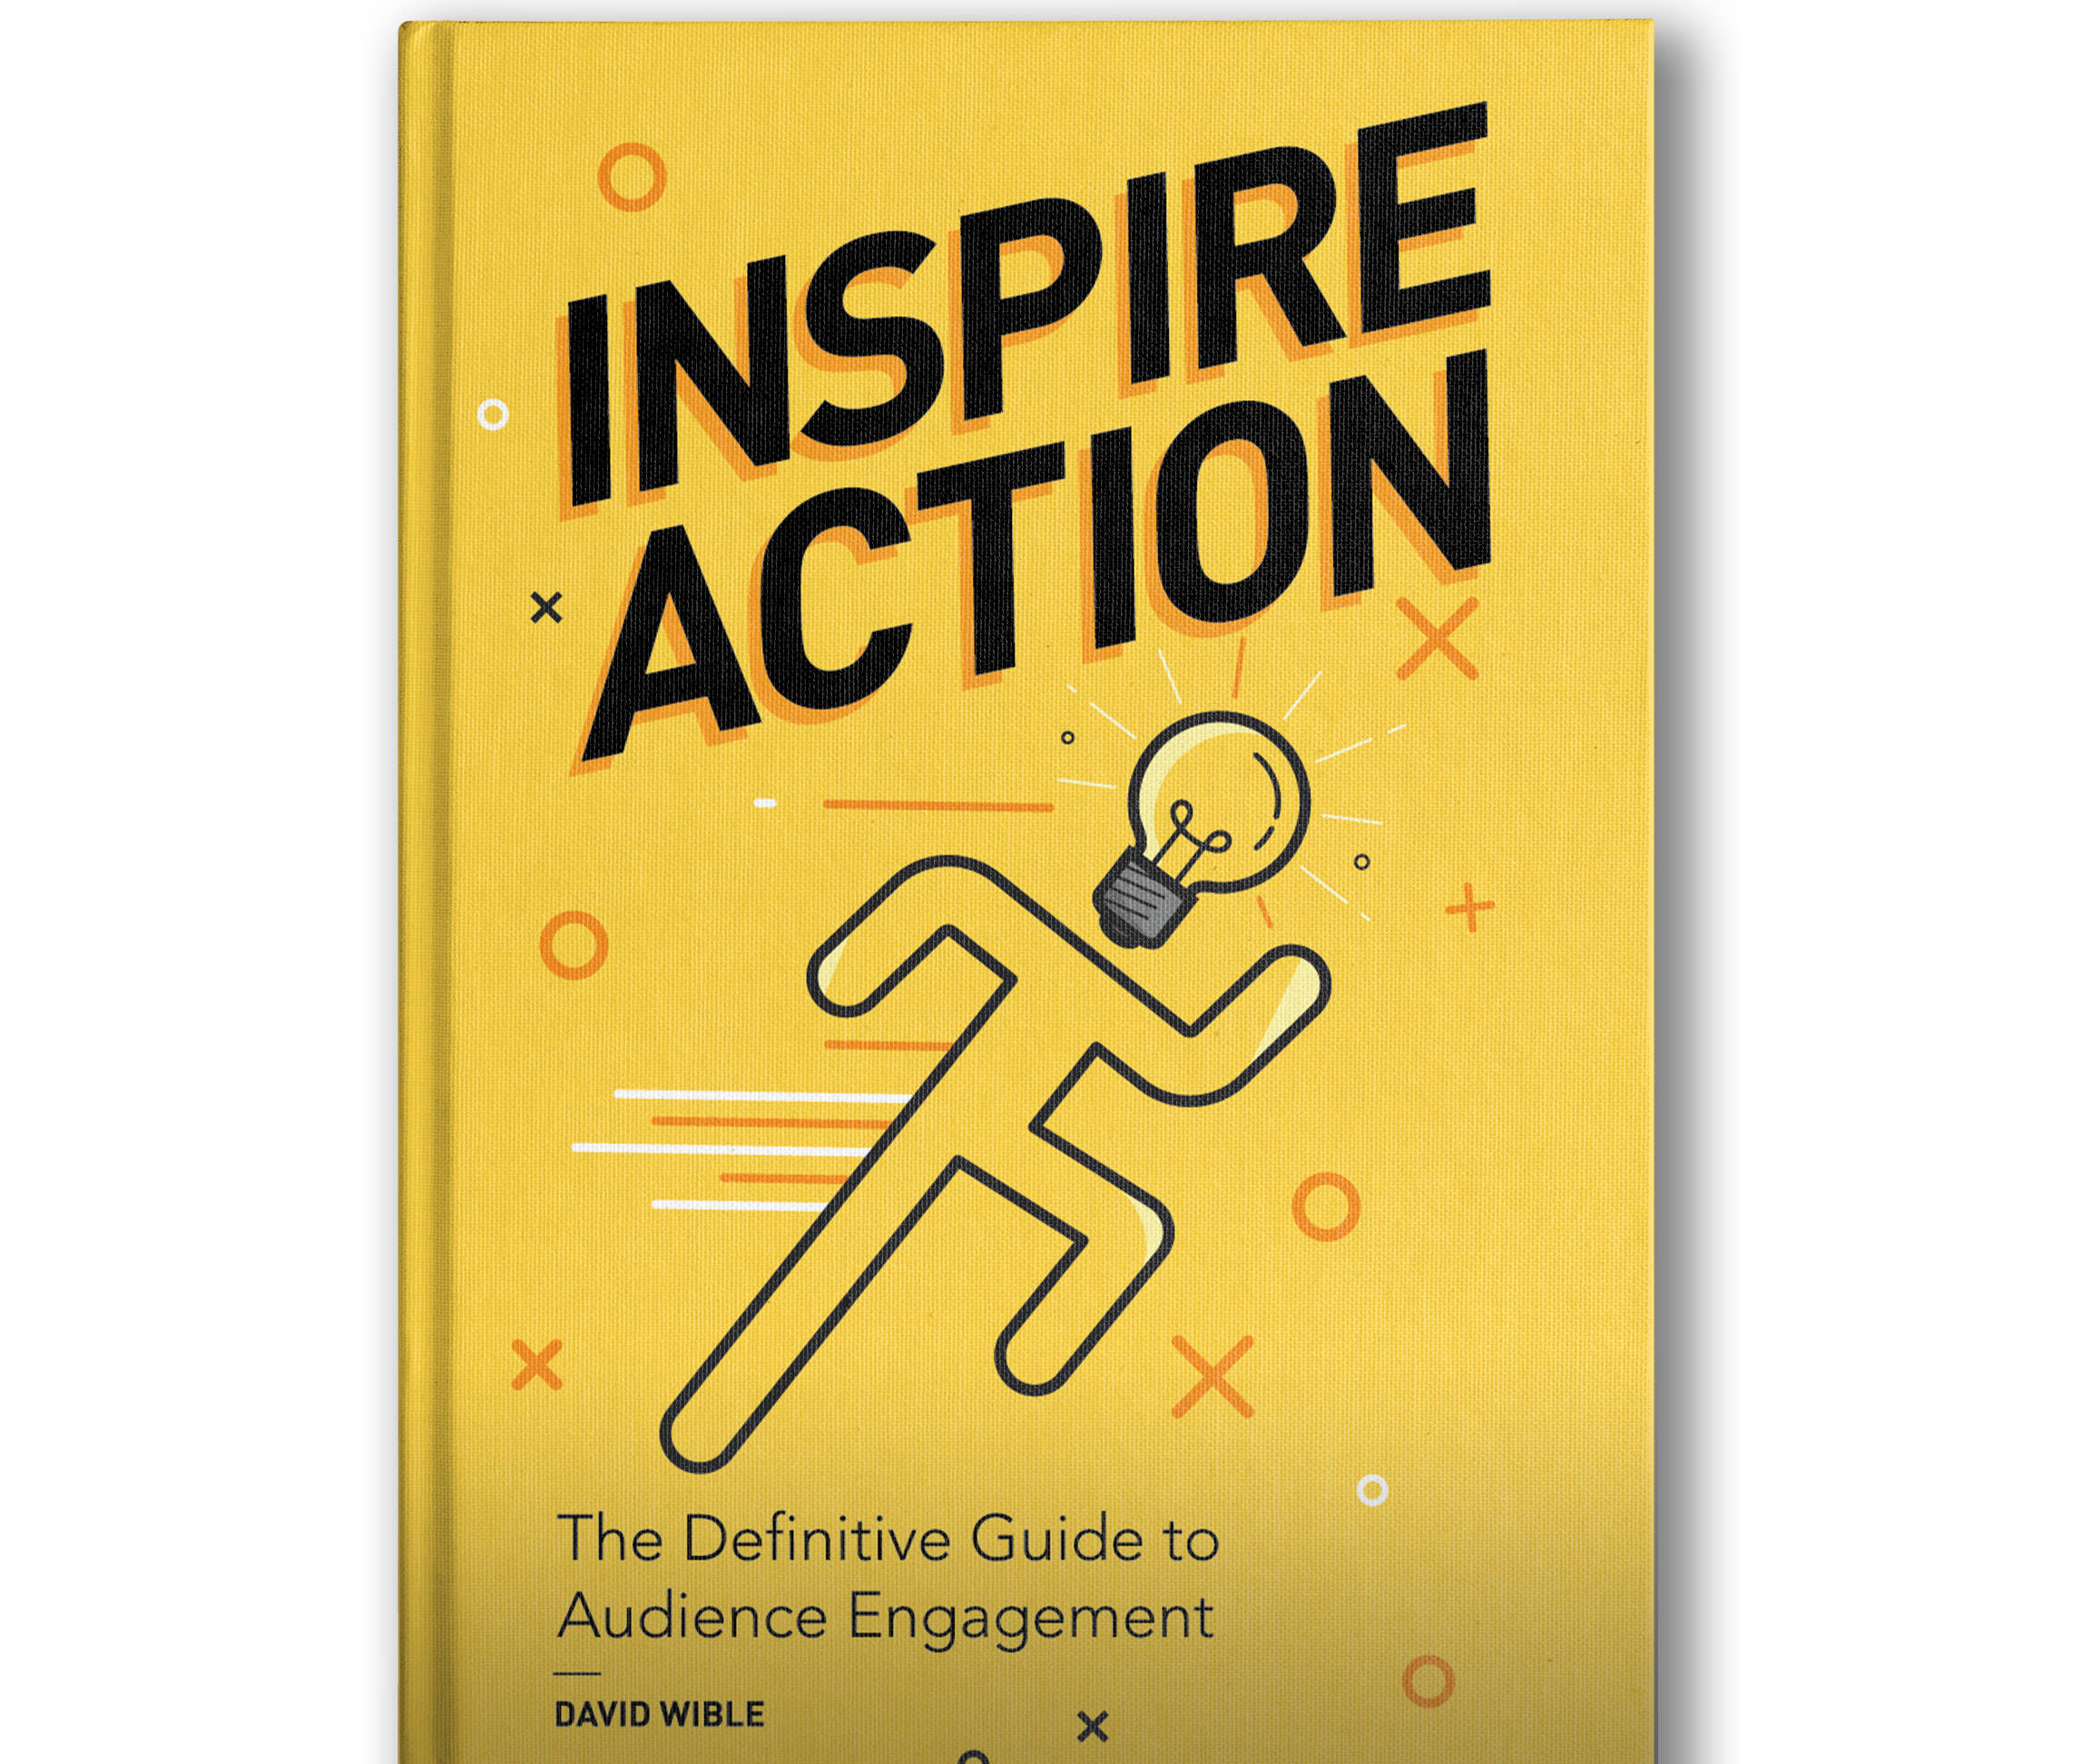 inspire-action-mockup-shadow.png